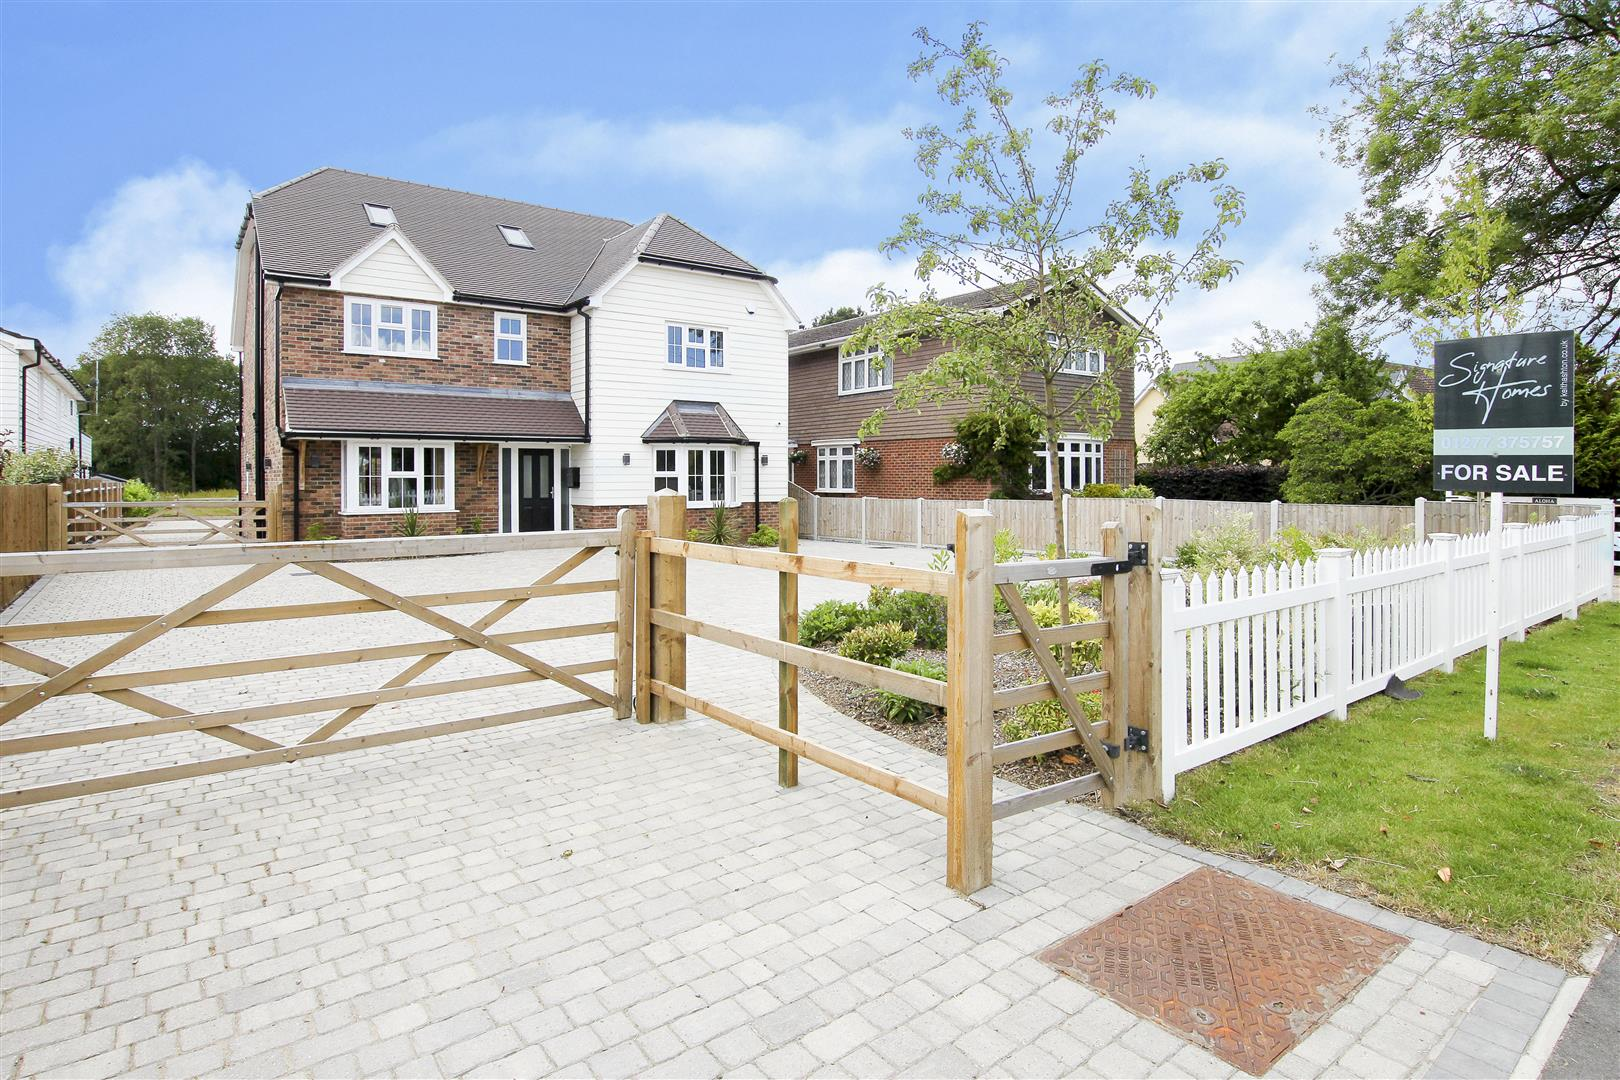 Wyatts Green, Brentwood –  Keith Ashton Signature Home